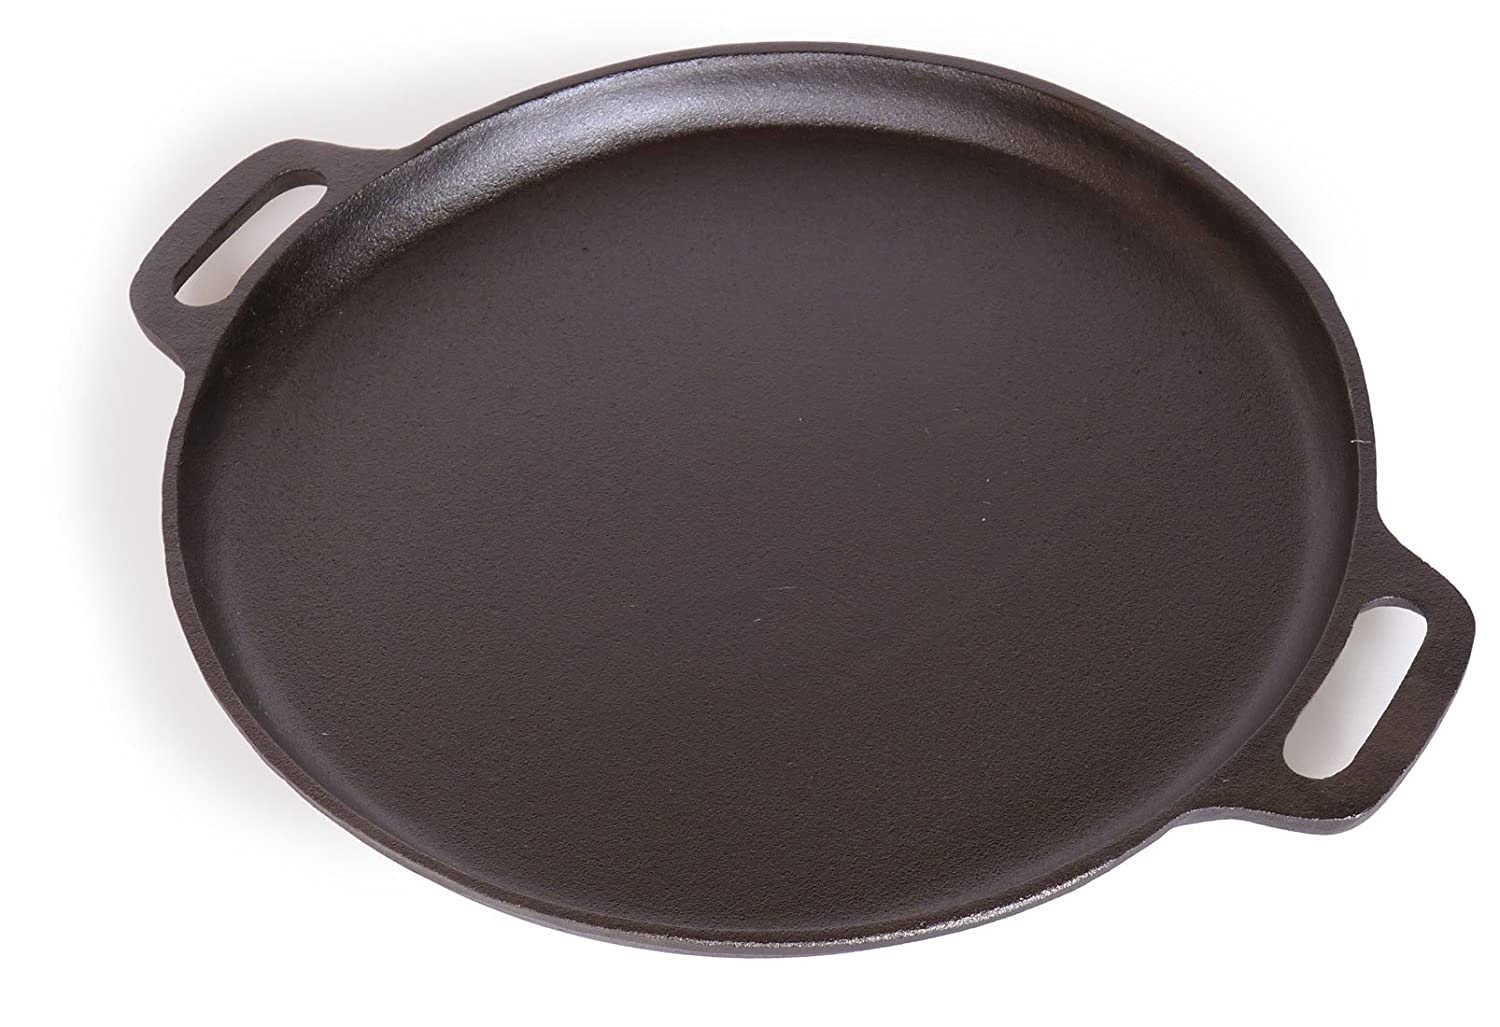 Spiceberry Home Pre-Seasoned Cast-Iron Pizza Pan - 14-Inch